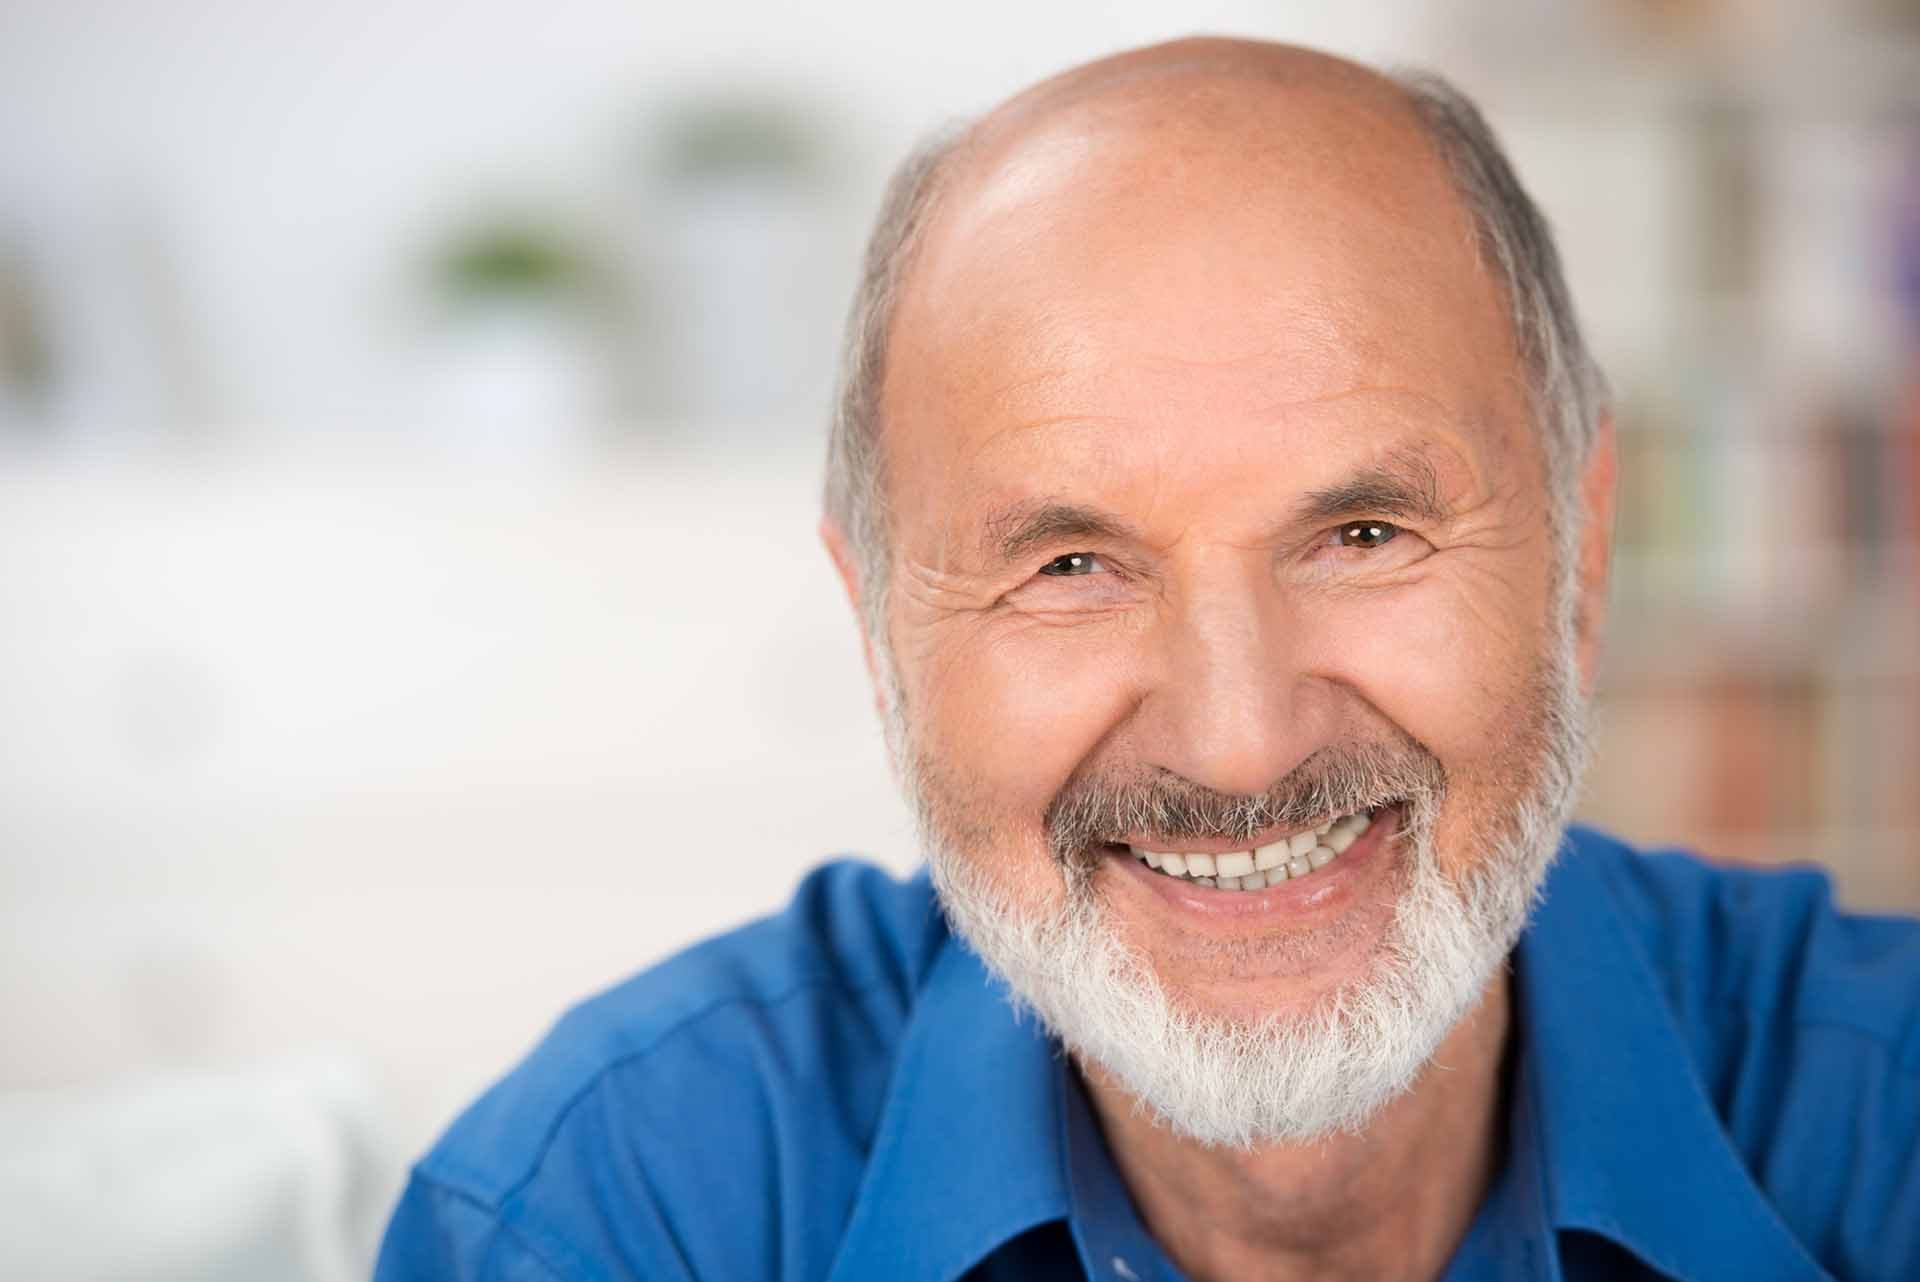 Completing your smile with dental veneers in Franklin, NC.